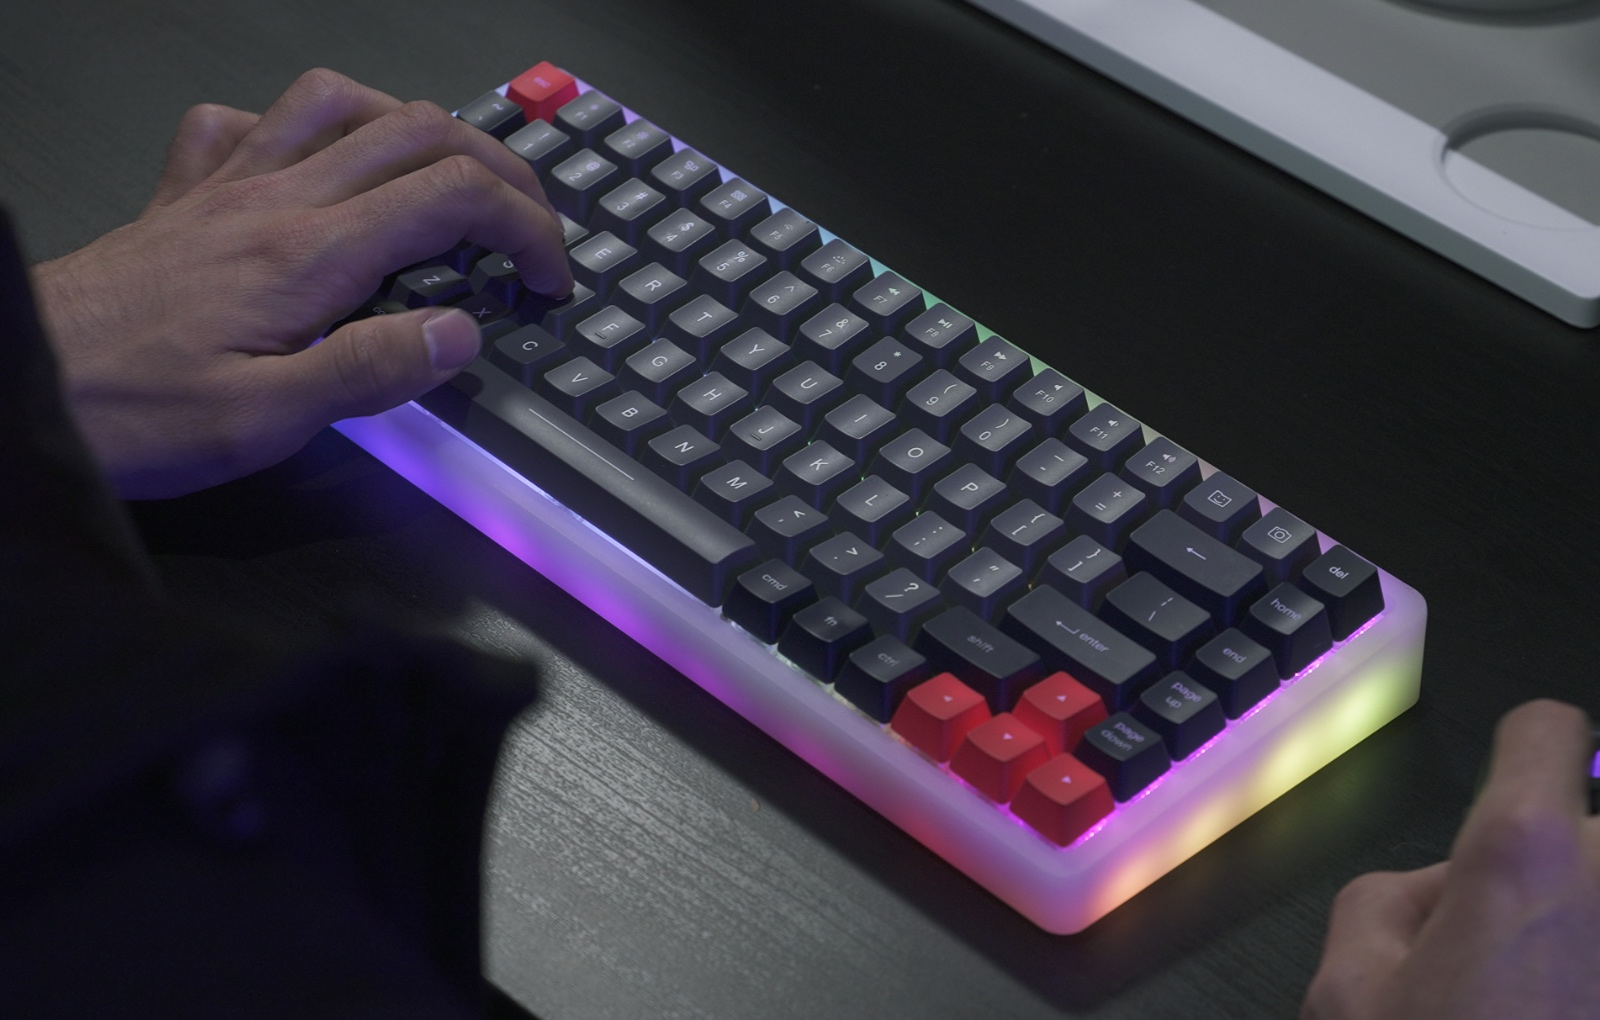 The Marsback M1 is one of those rare wireless mechanical keyboards that supports Mac-specific keys. (Image source: Marsback)